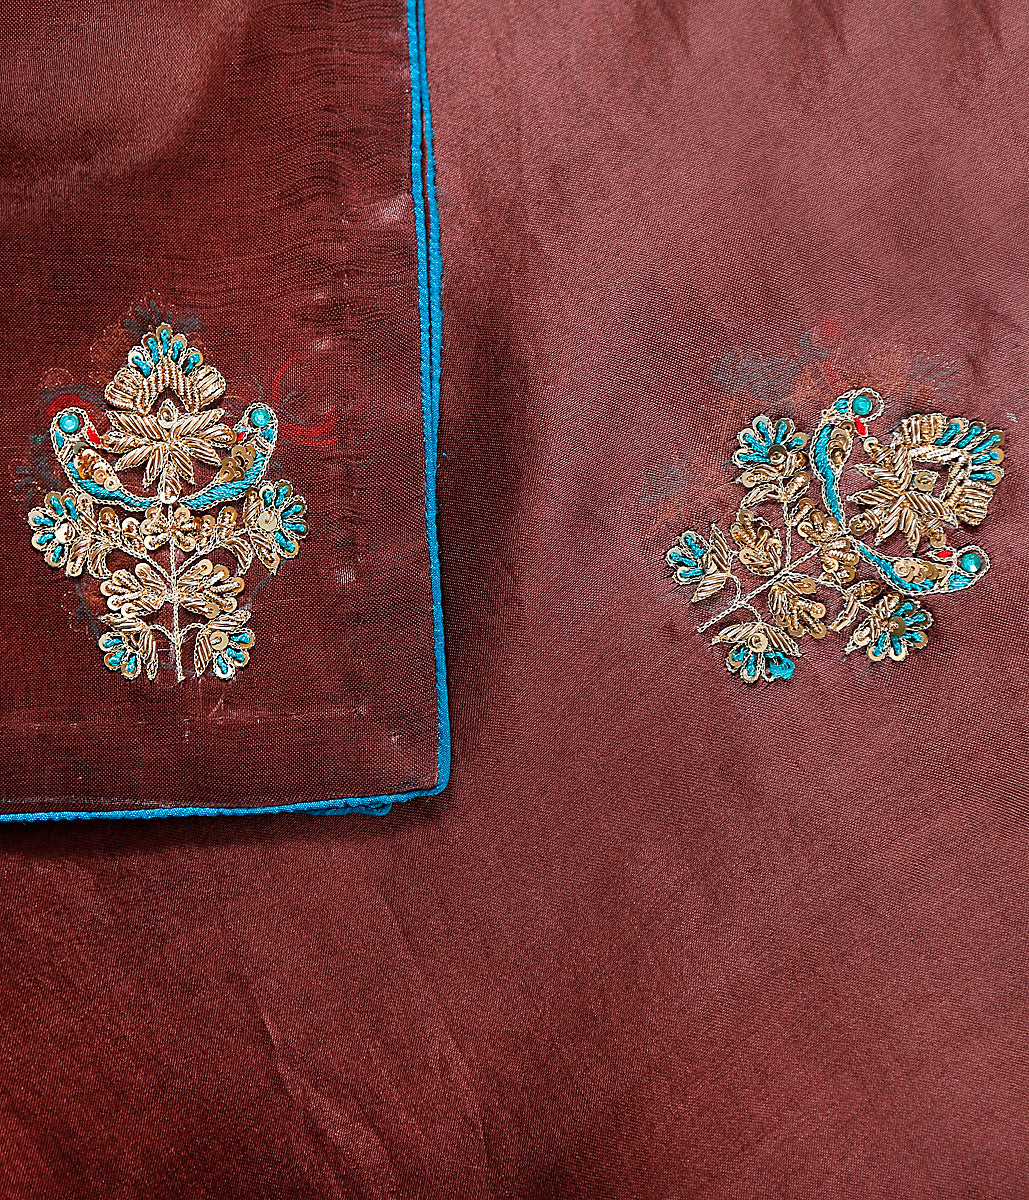 Handwoven organza dupatta in Chocolate brown with hand embroidered motifs